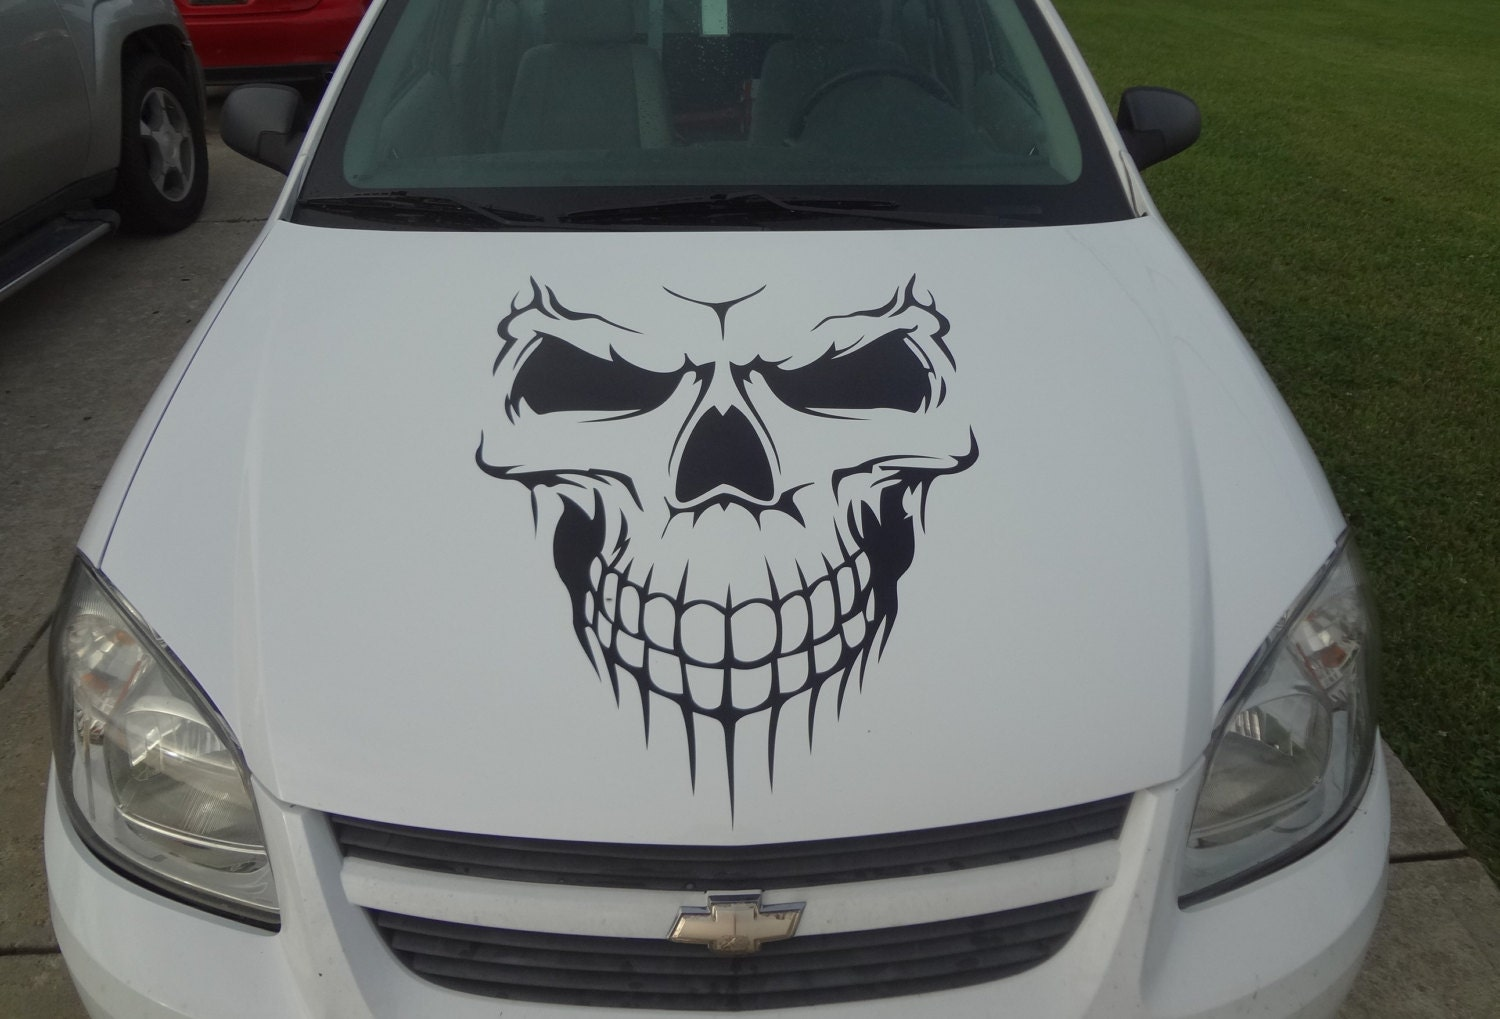 Car skull hood decal garage home decor wall hanging graphic for Automobile decorations home